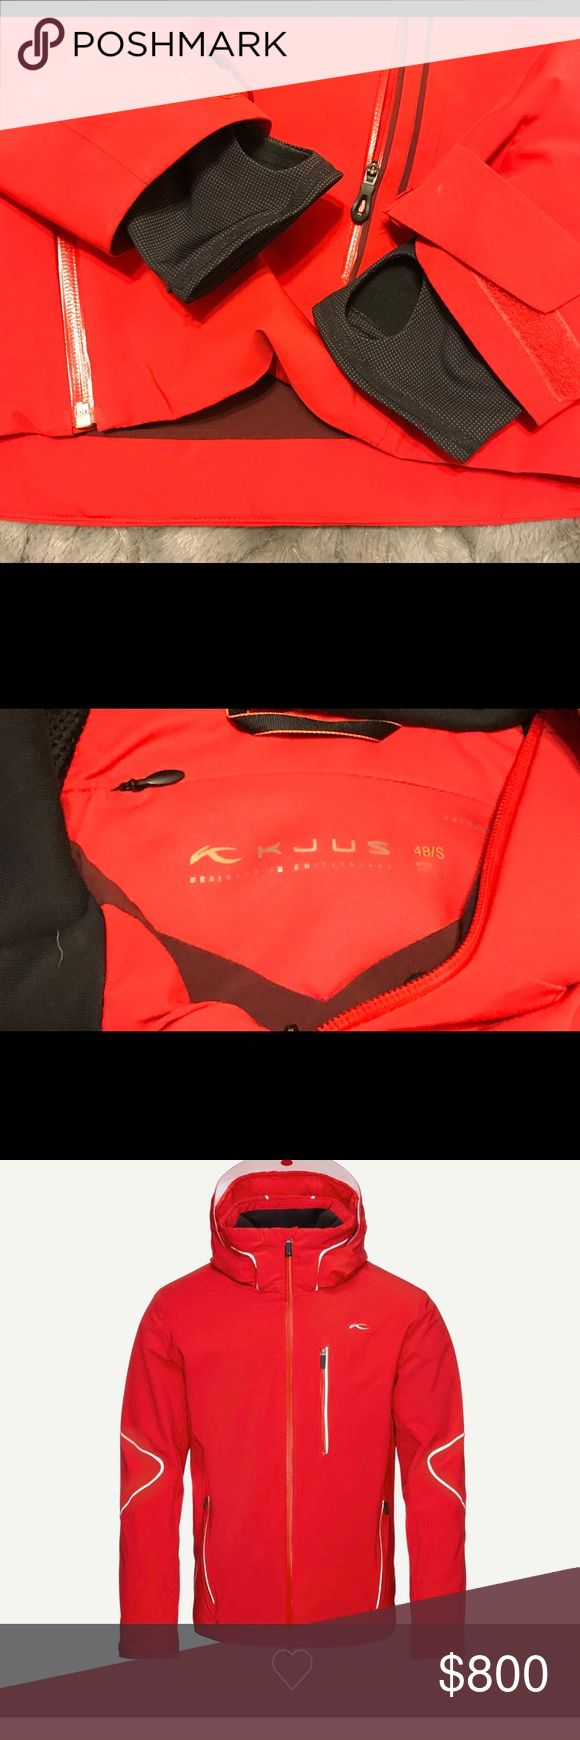 KJUS Formula Jacket KJUS jacket. ThermoCore /AC vent Technology. Only worn twice. Great price. If you know about KJUS then this jacket needs no explanation. Please no low offers. Size is a 48 S but that is Euro size.  Fits like an American Medium.  Feel free to Contact me if you have any questions. KJUS Jackets & Coats Ski & Snowboard